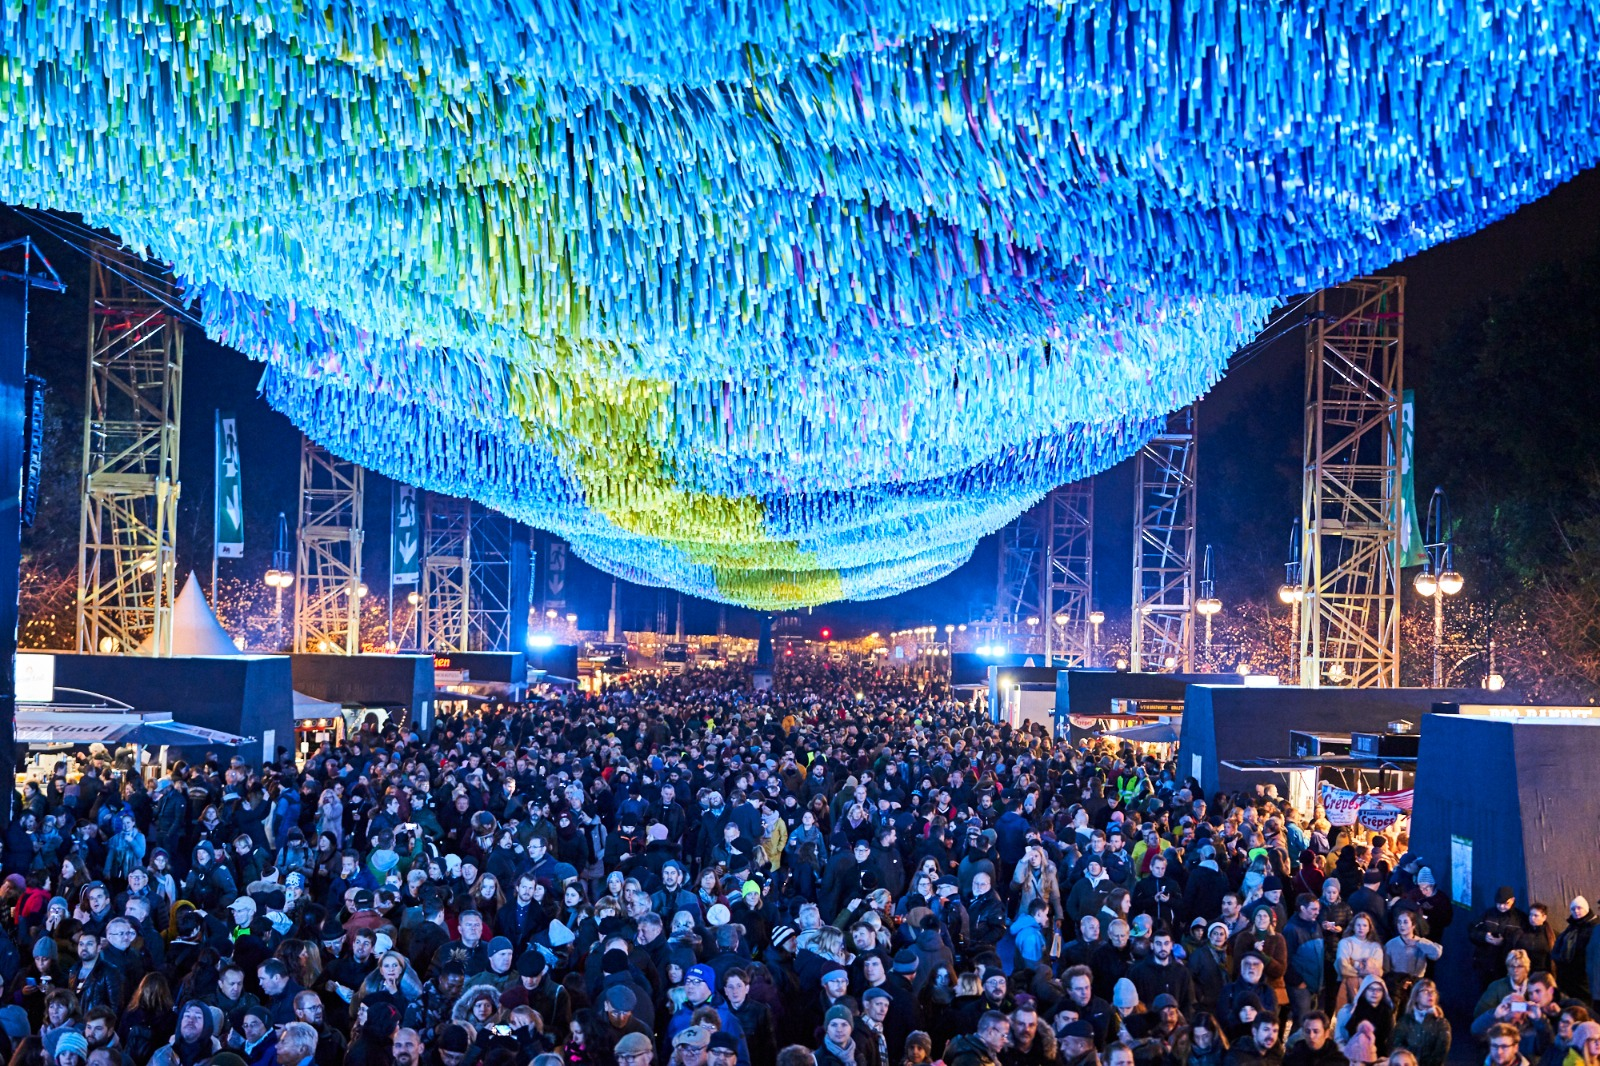 Crowd of people under Visions in Motion by Patrick Shearn lit up at night